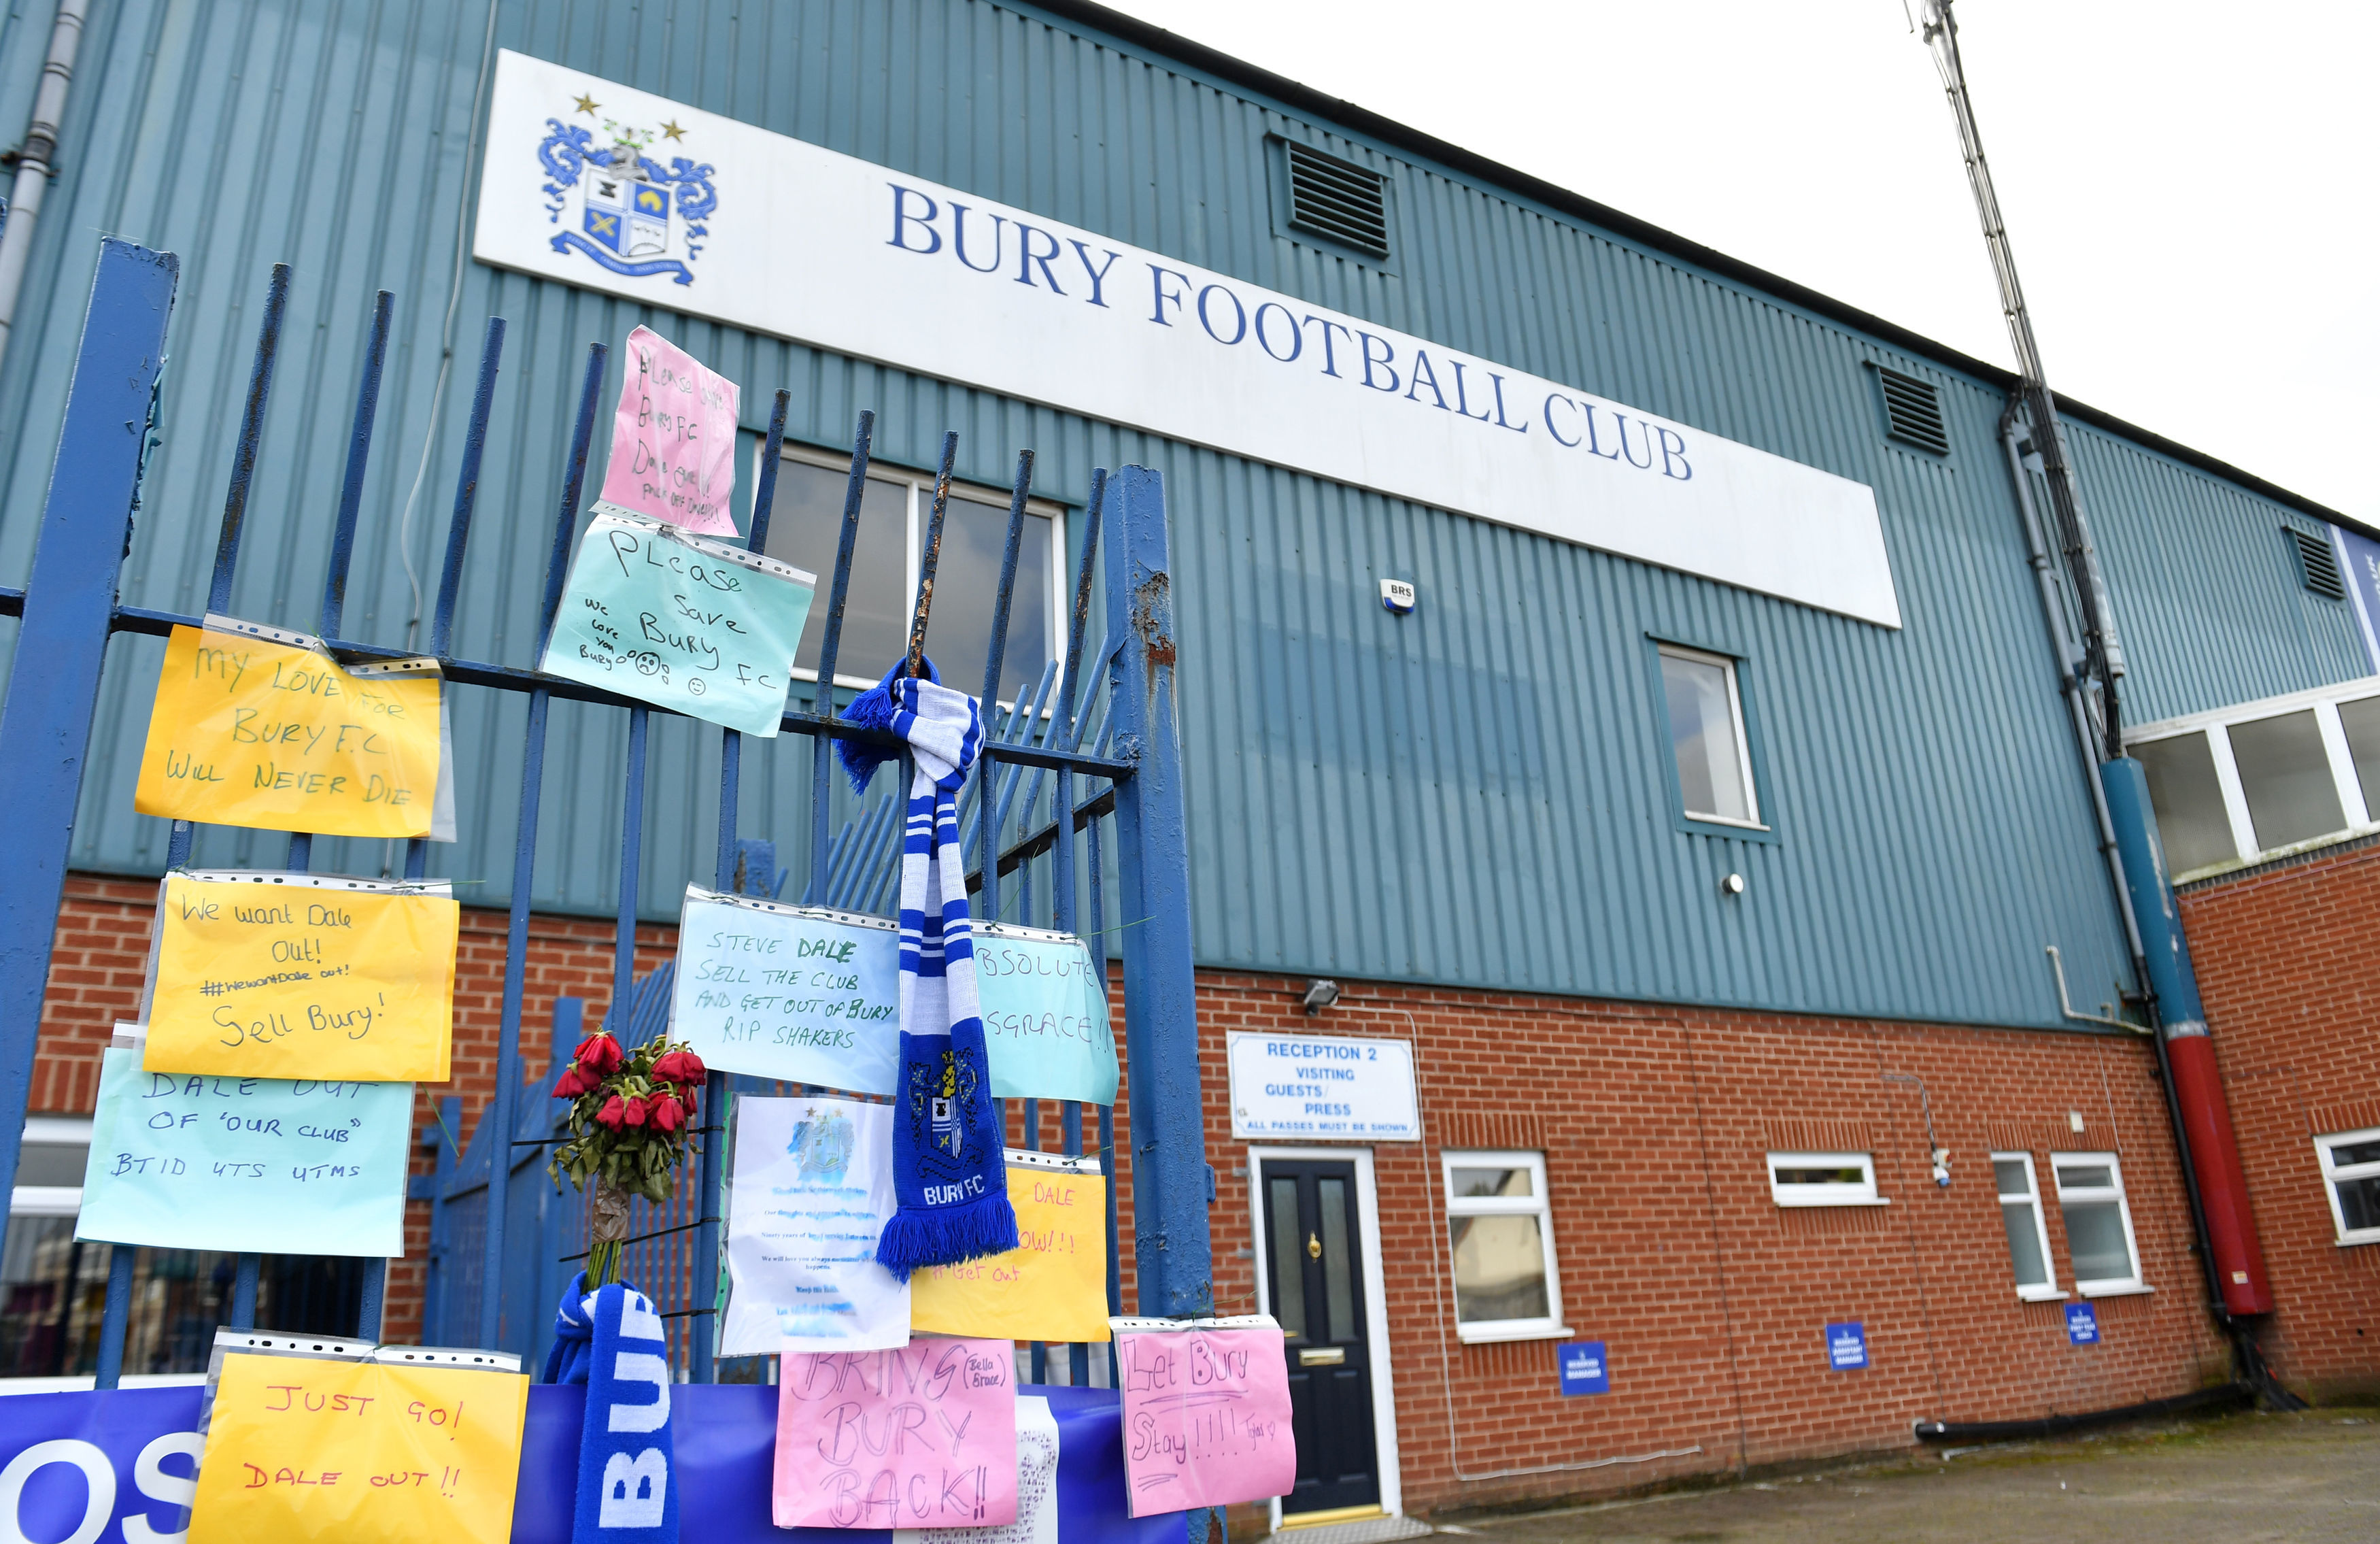 Dale claims Bury have been sold with hours to spare